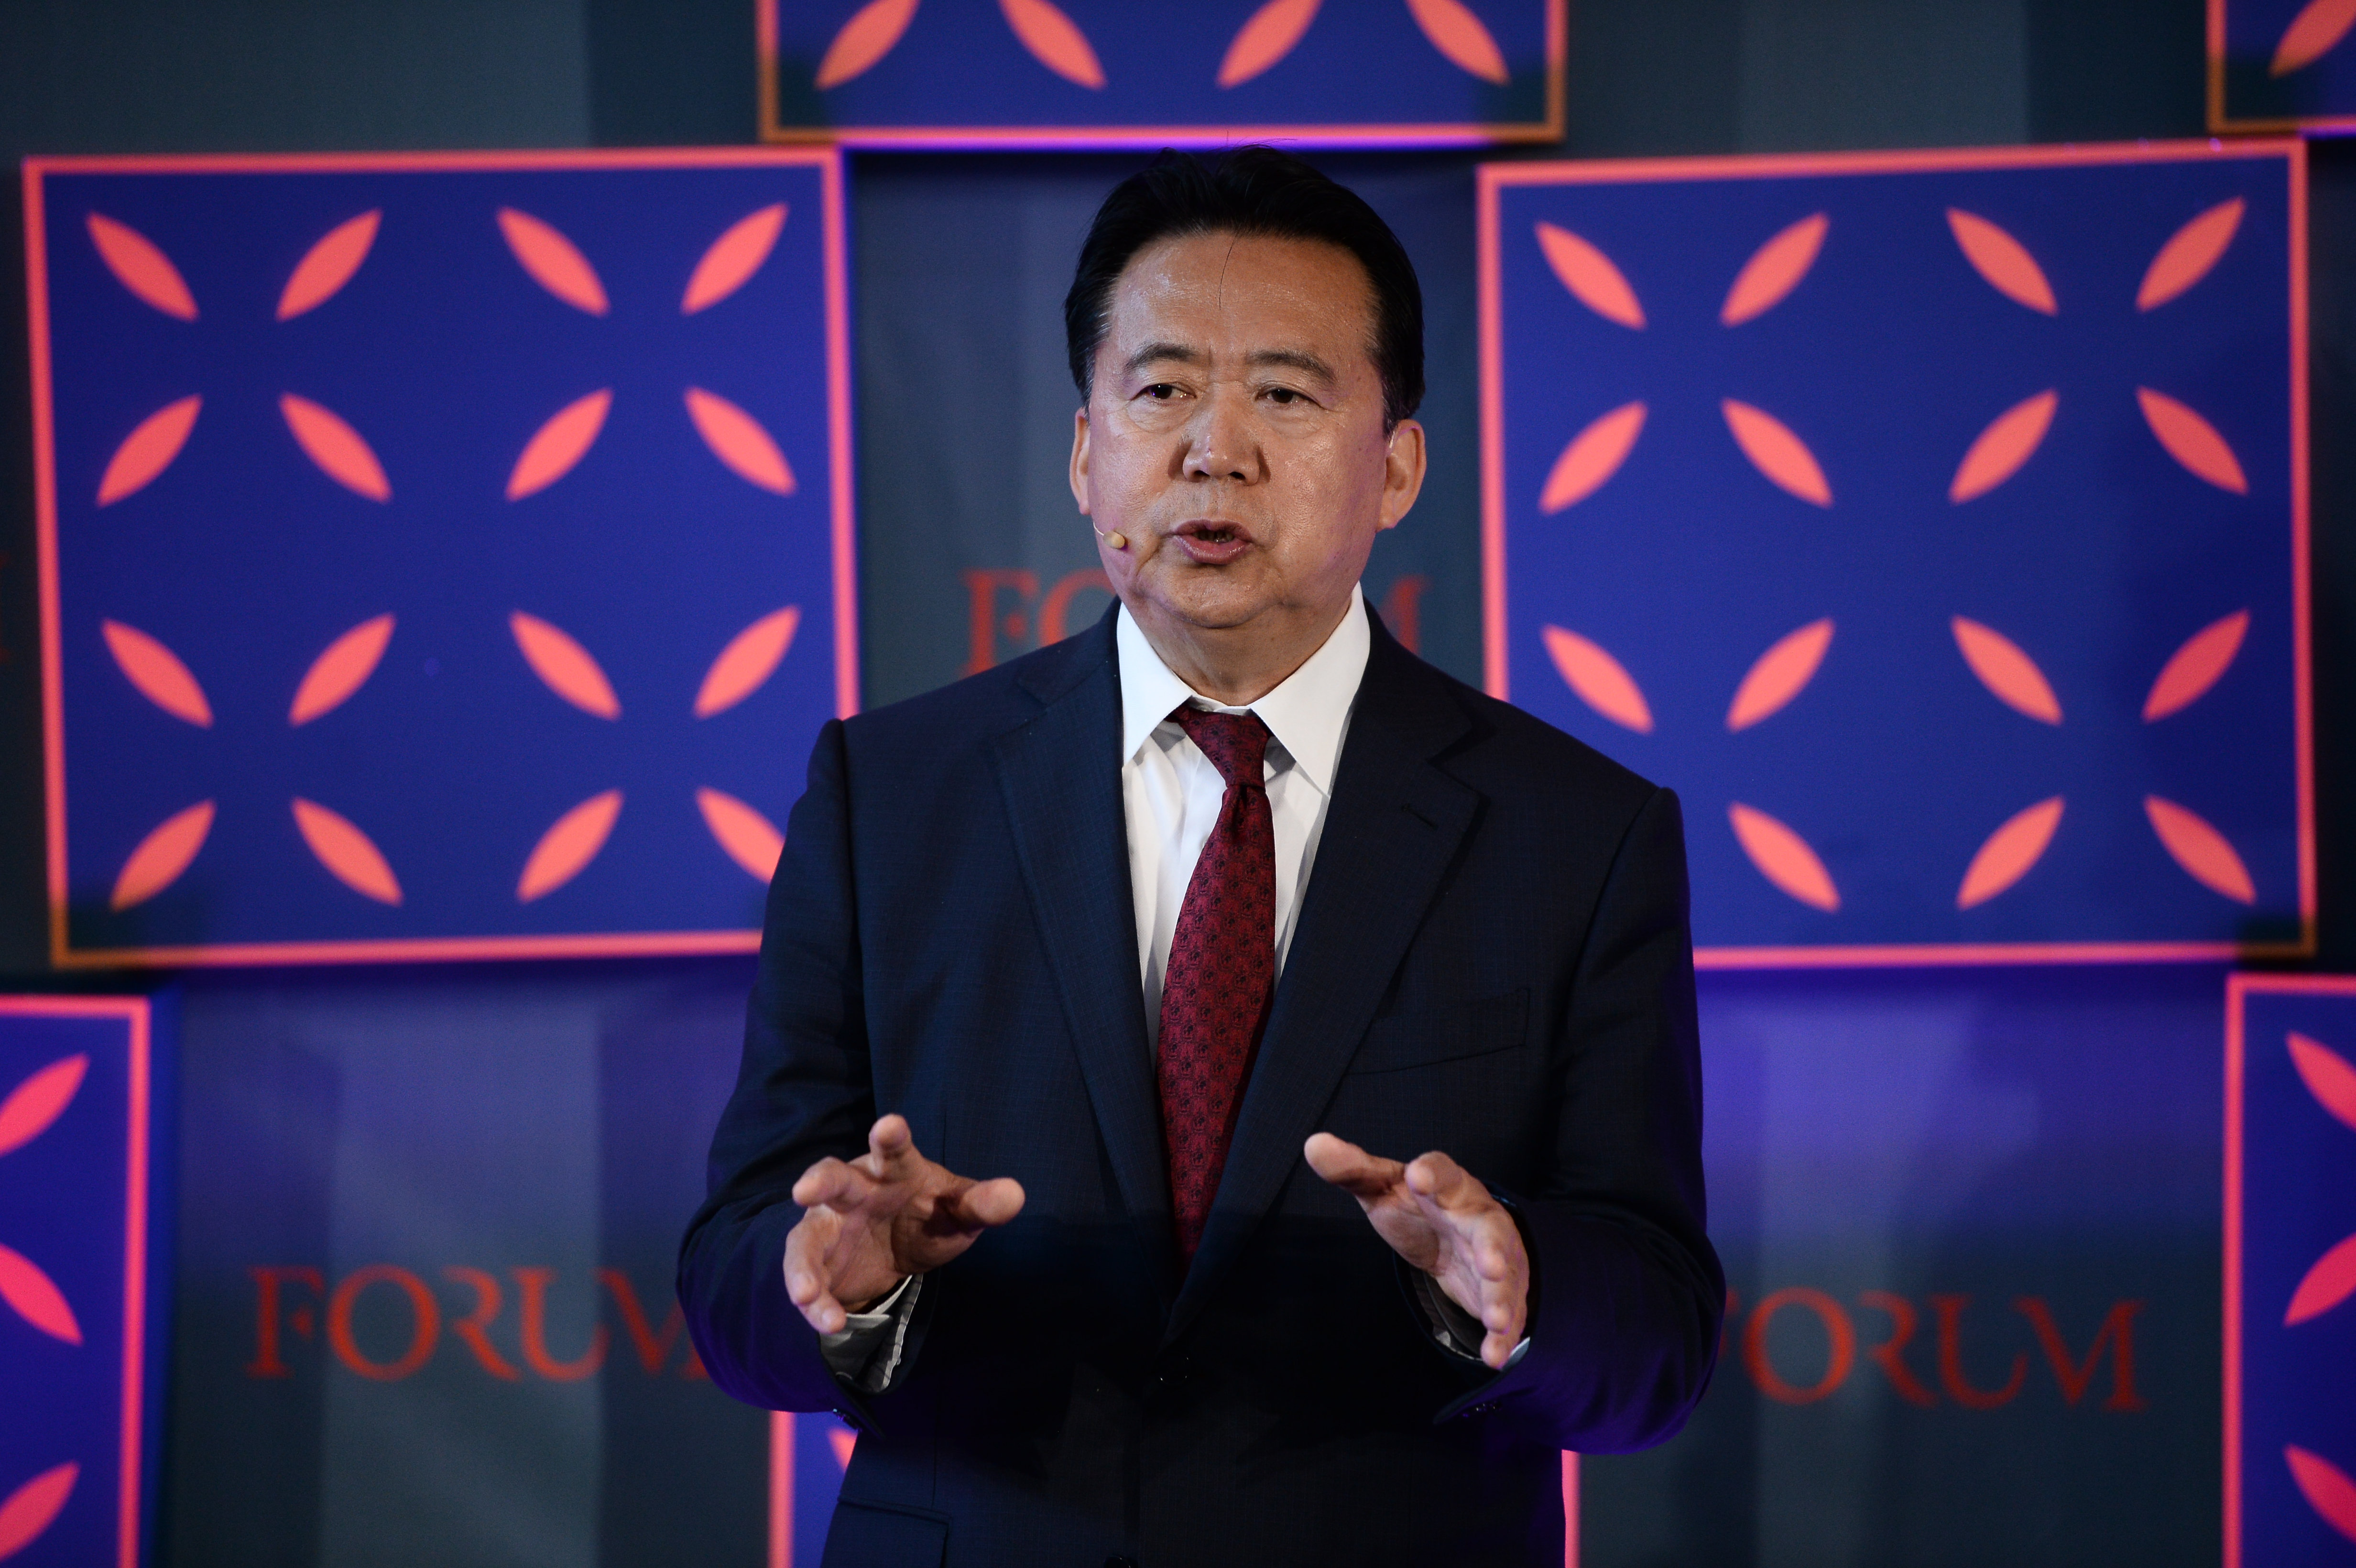 China court sentences former Interpol president Meng Hongwei to prison for bribery